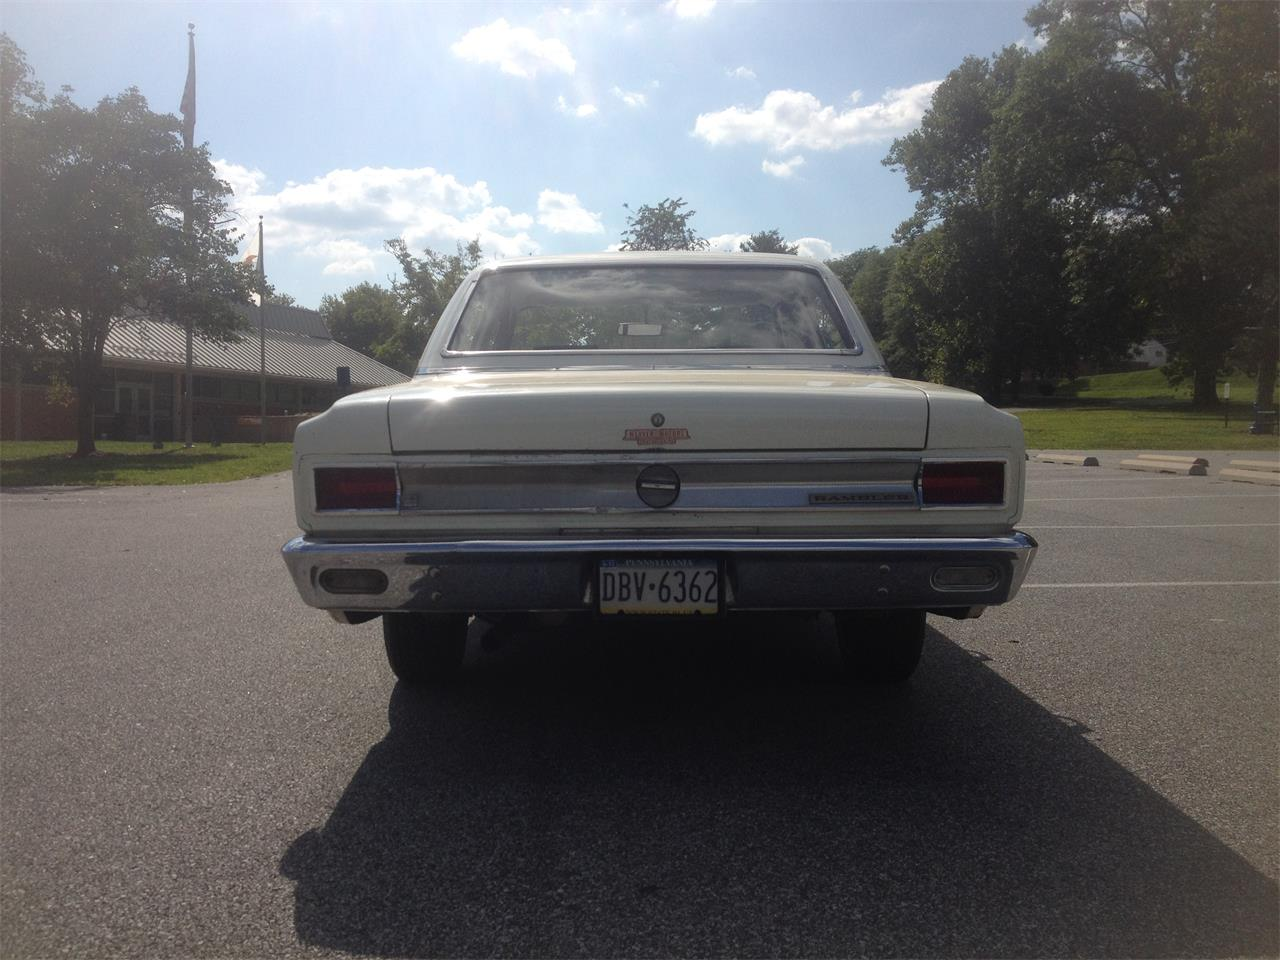 Large Picture of '69 AMC American located in Pennsylvania Offered by a Private Seller - IFR9